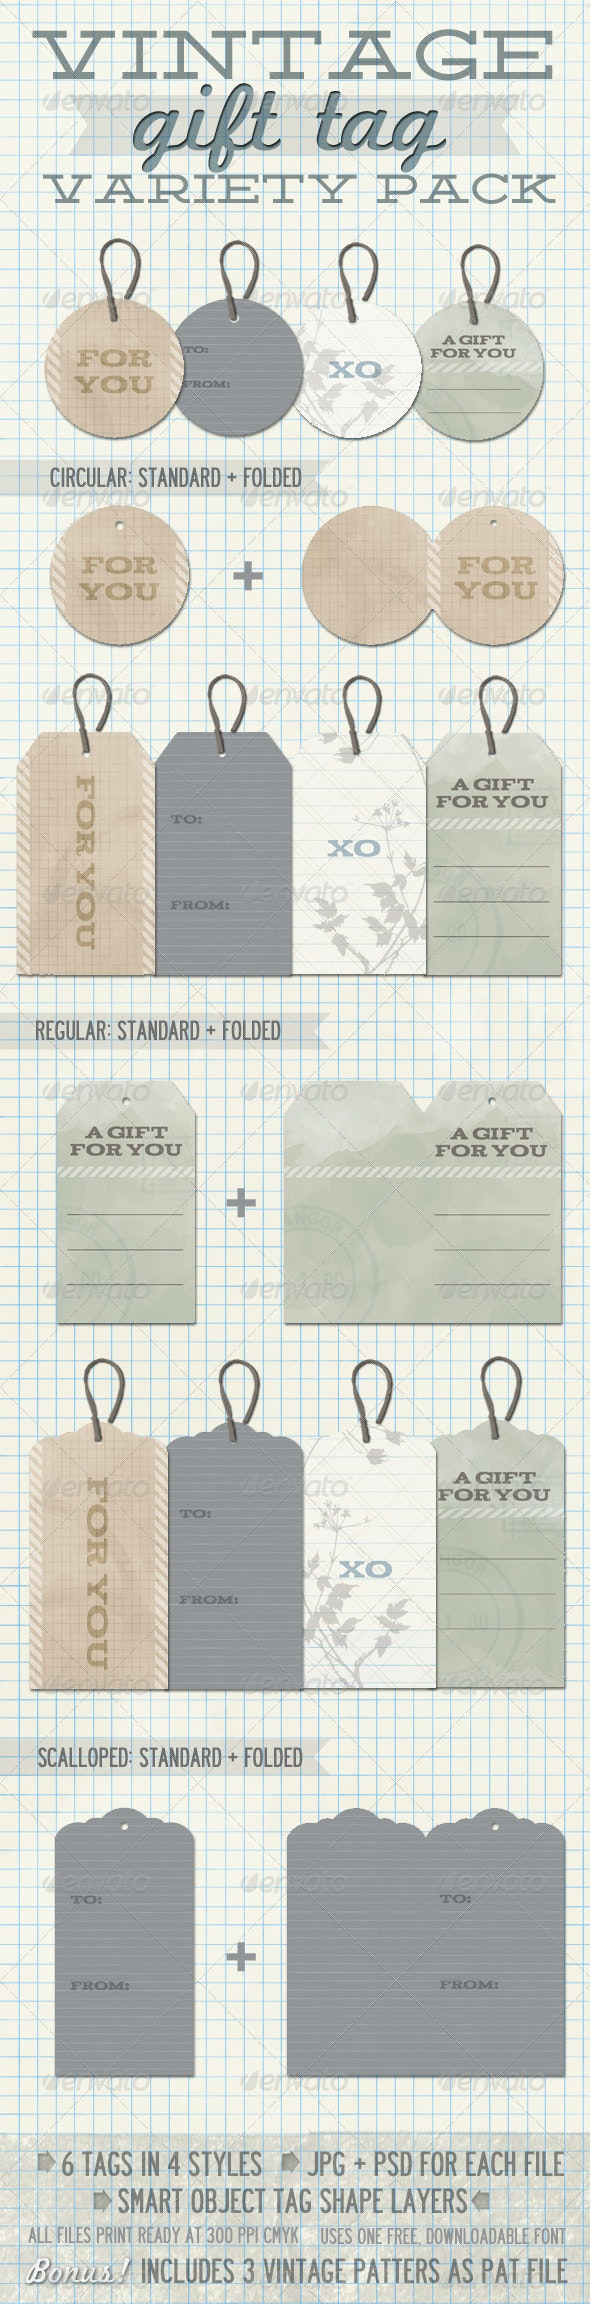 Vintage Gift Tag Variety Pack - Stationery Print Templates